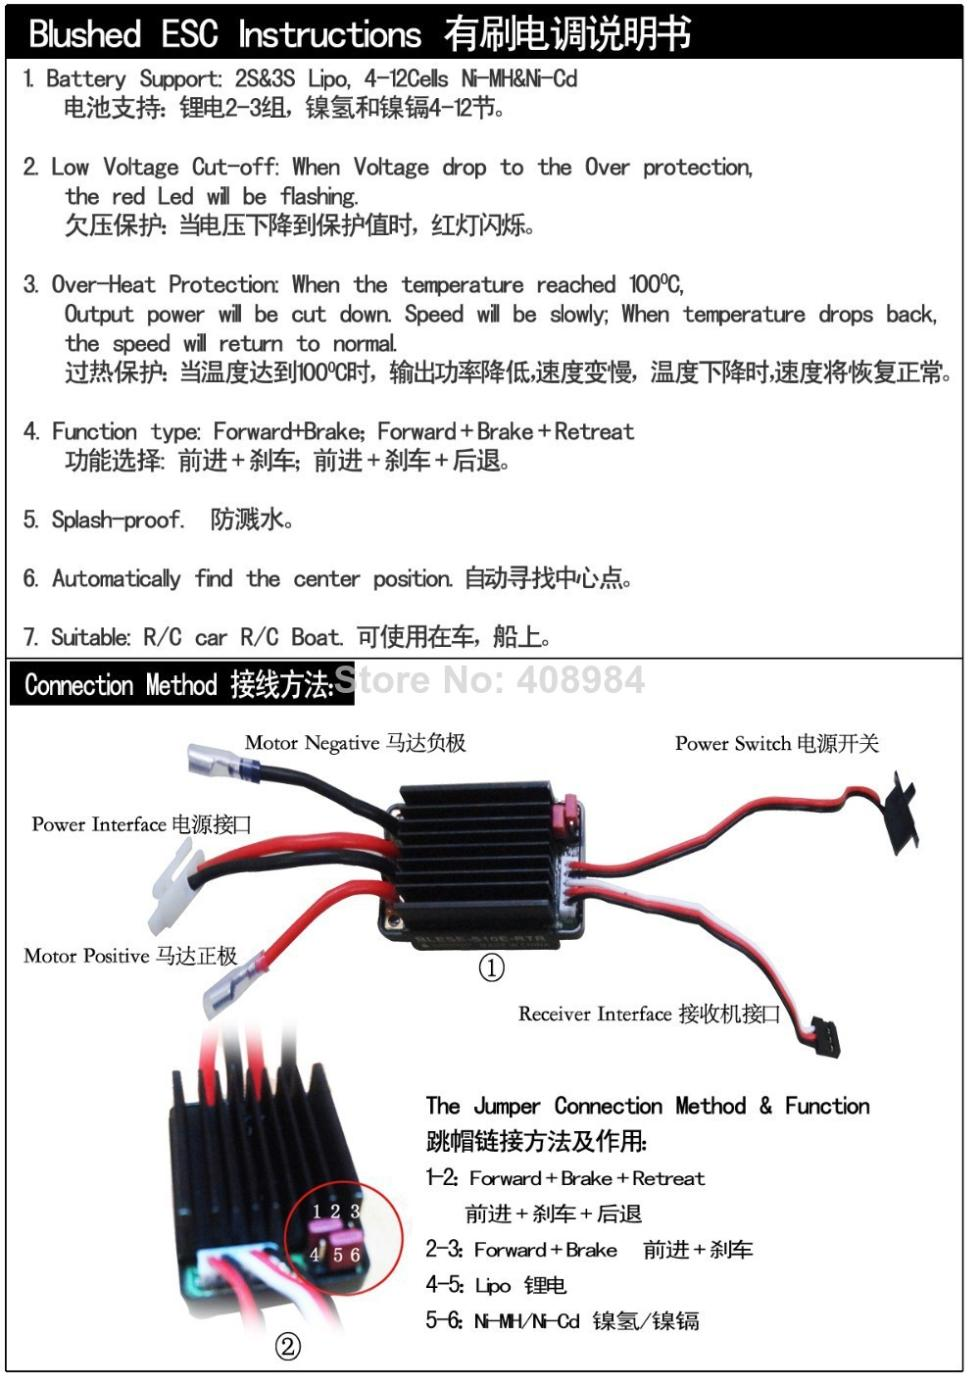 6 12v 320a Esc Rc Ship Boat R C Hobby Brushed Motor Speed Wiring For Dummies Manual Original Box No The Bec Output 56v 2a Item Size 34 X 152 Mm Net Weight 45g Package 56g Color Blac